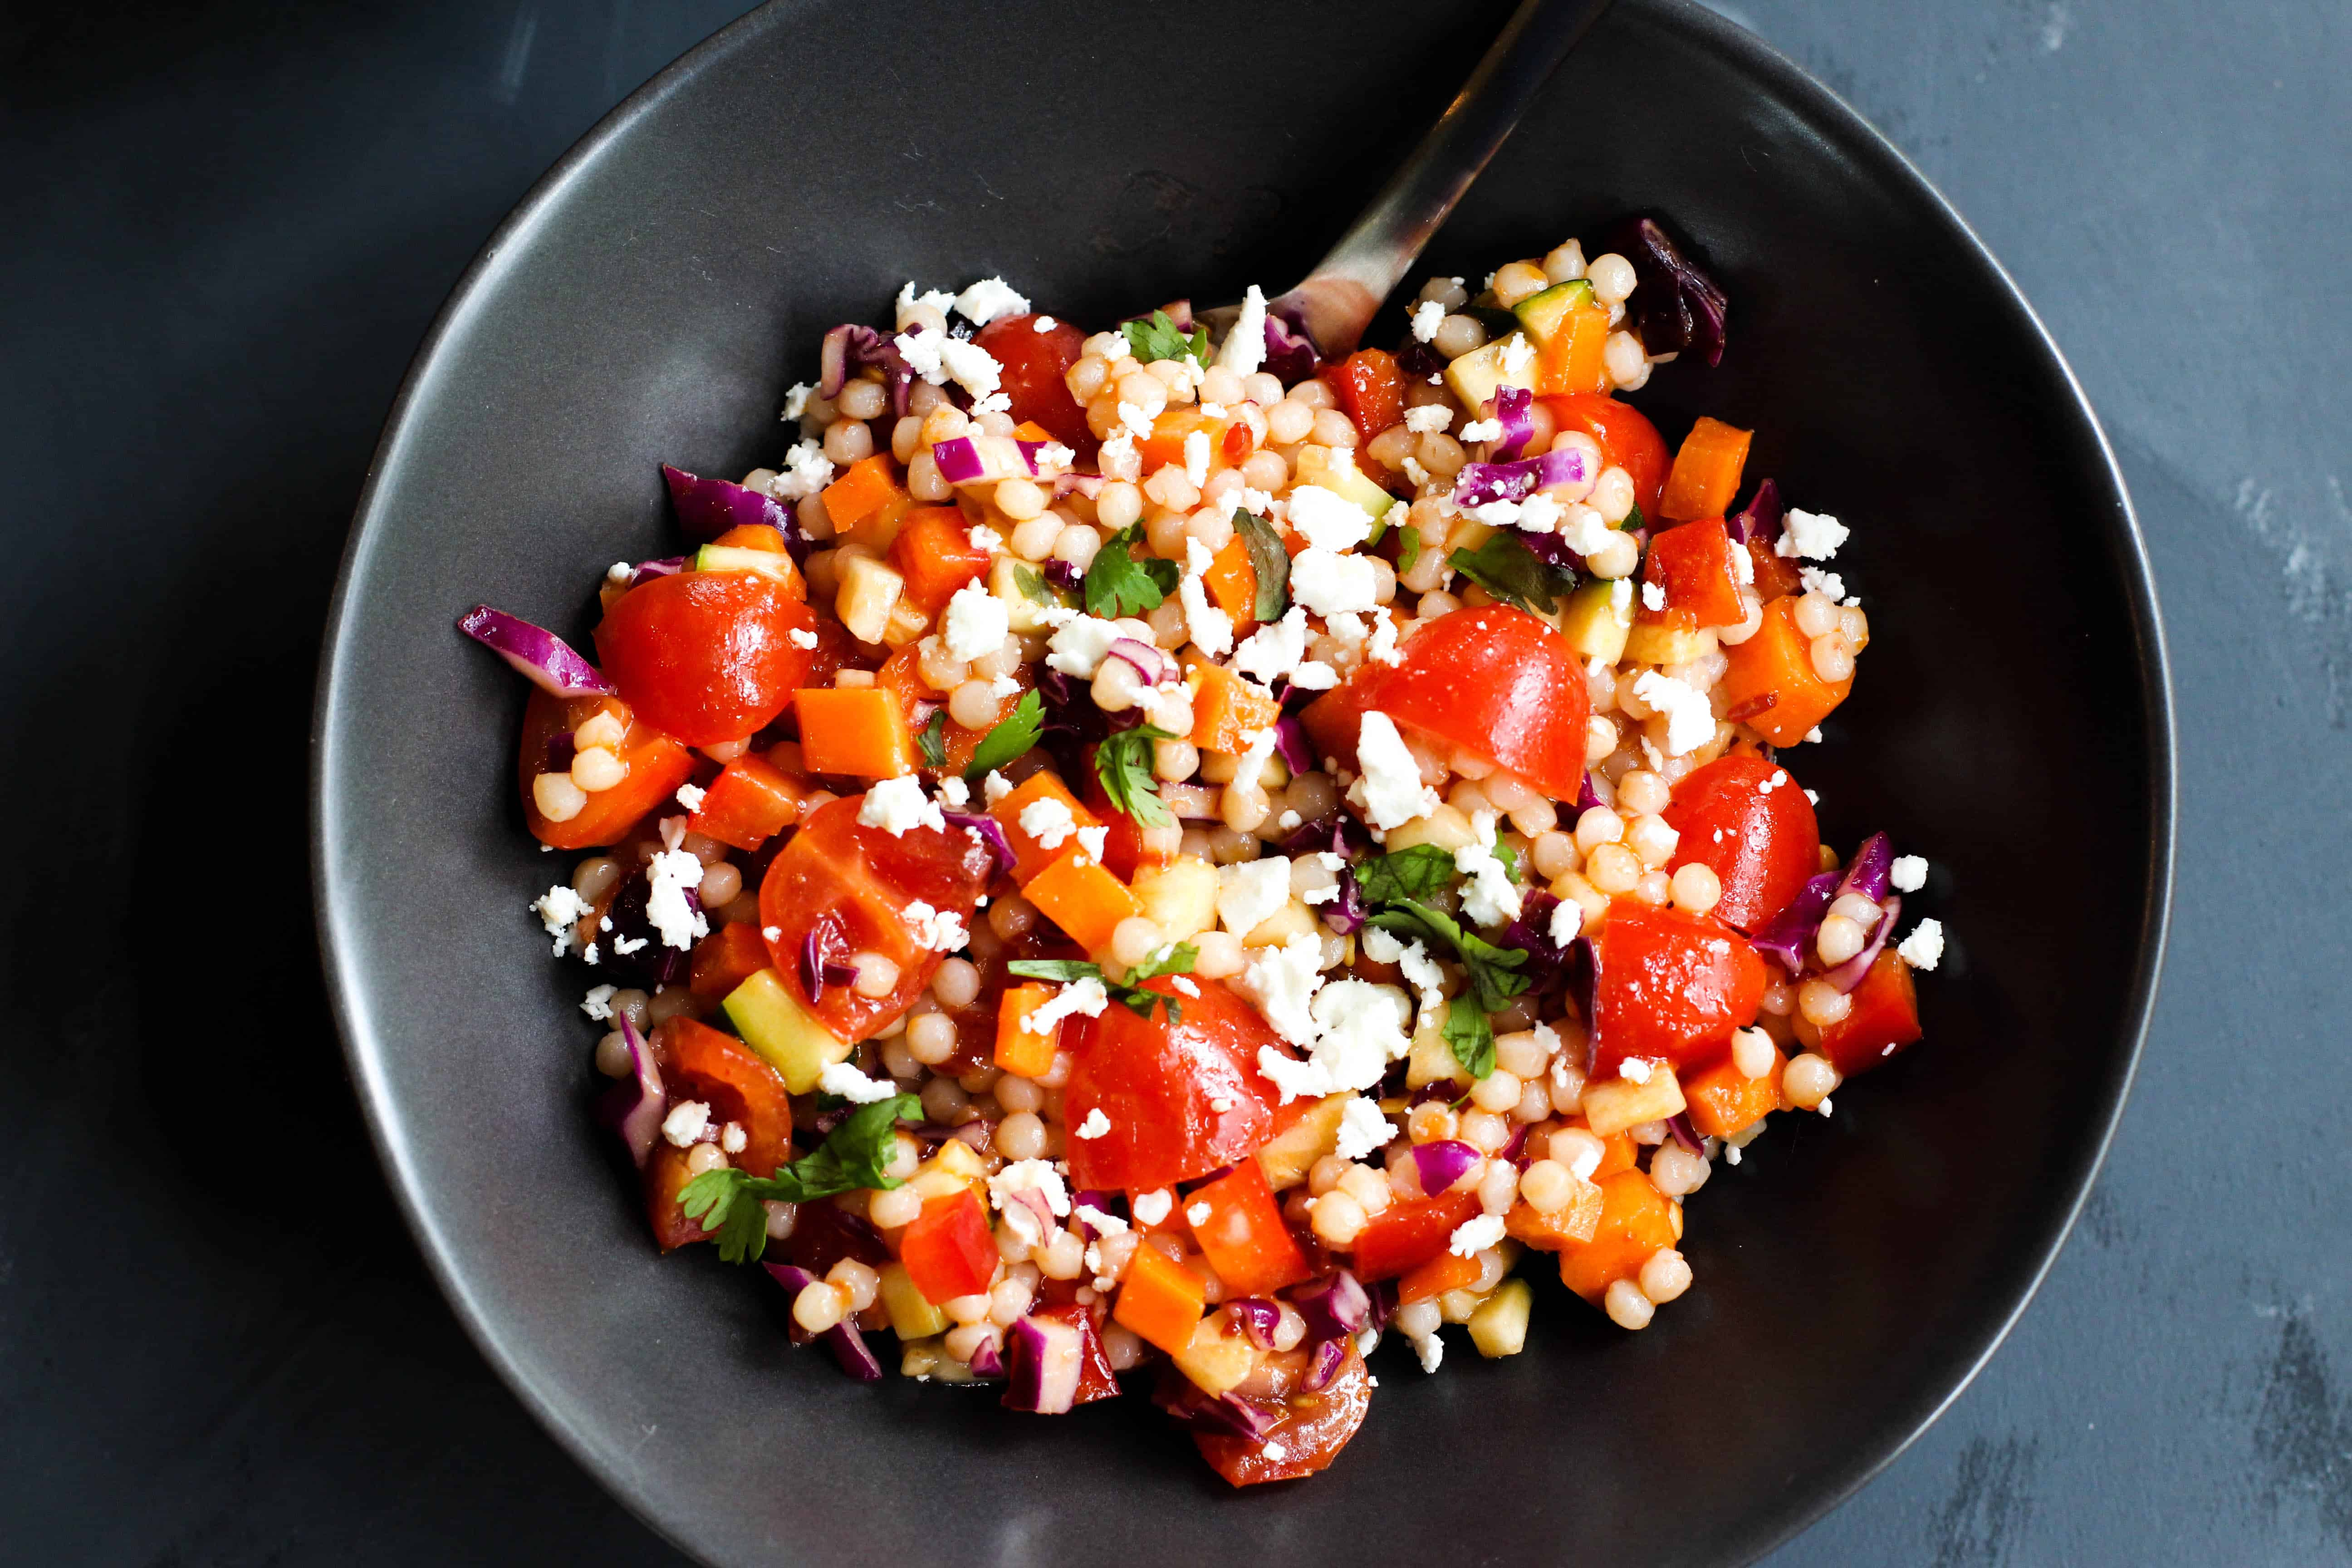 This Spicy Israeli Couscous Salad is easy to throw together and so vibrant in colors and flavors!